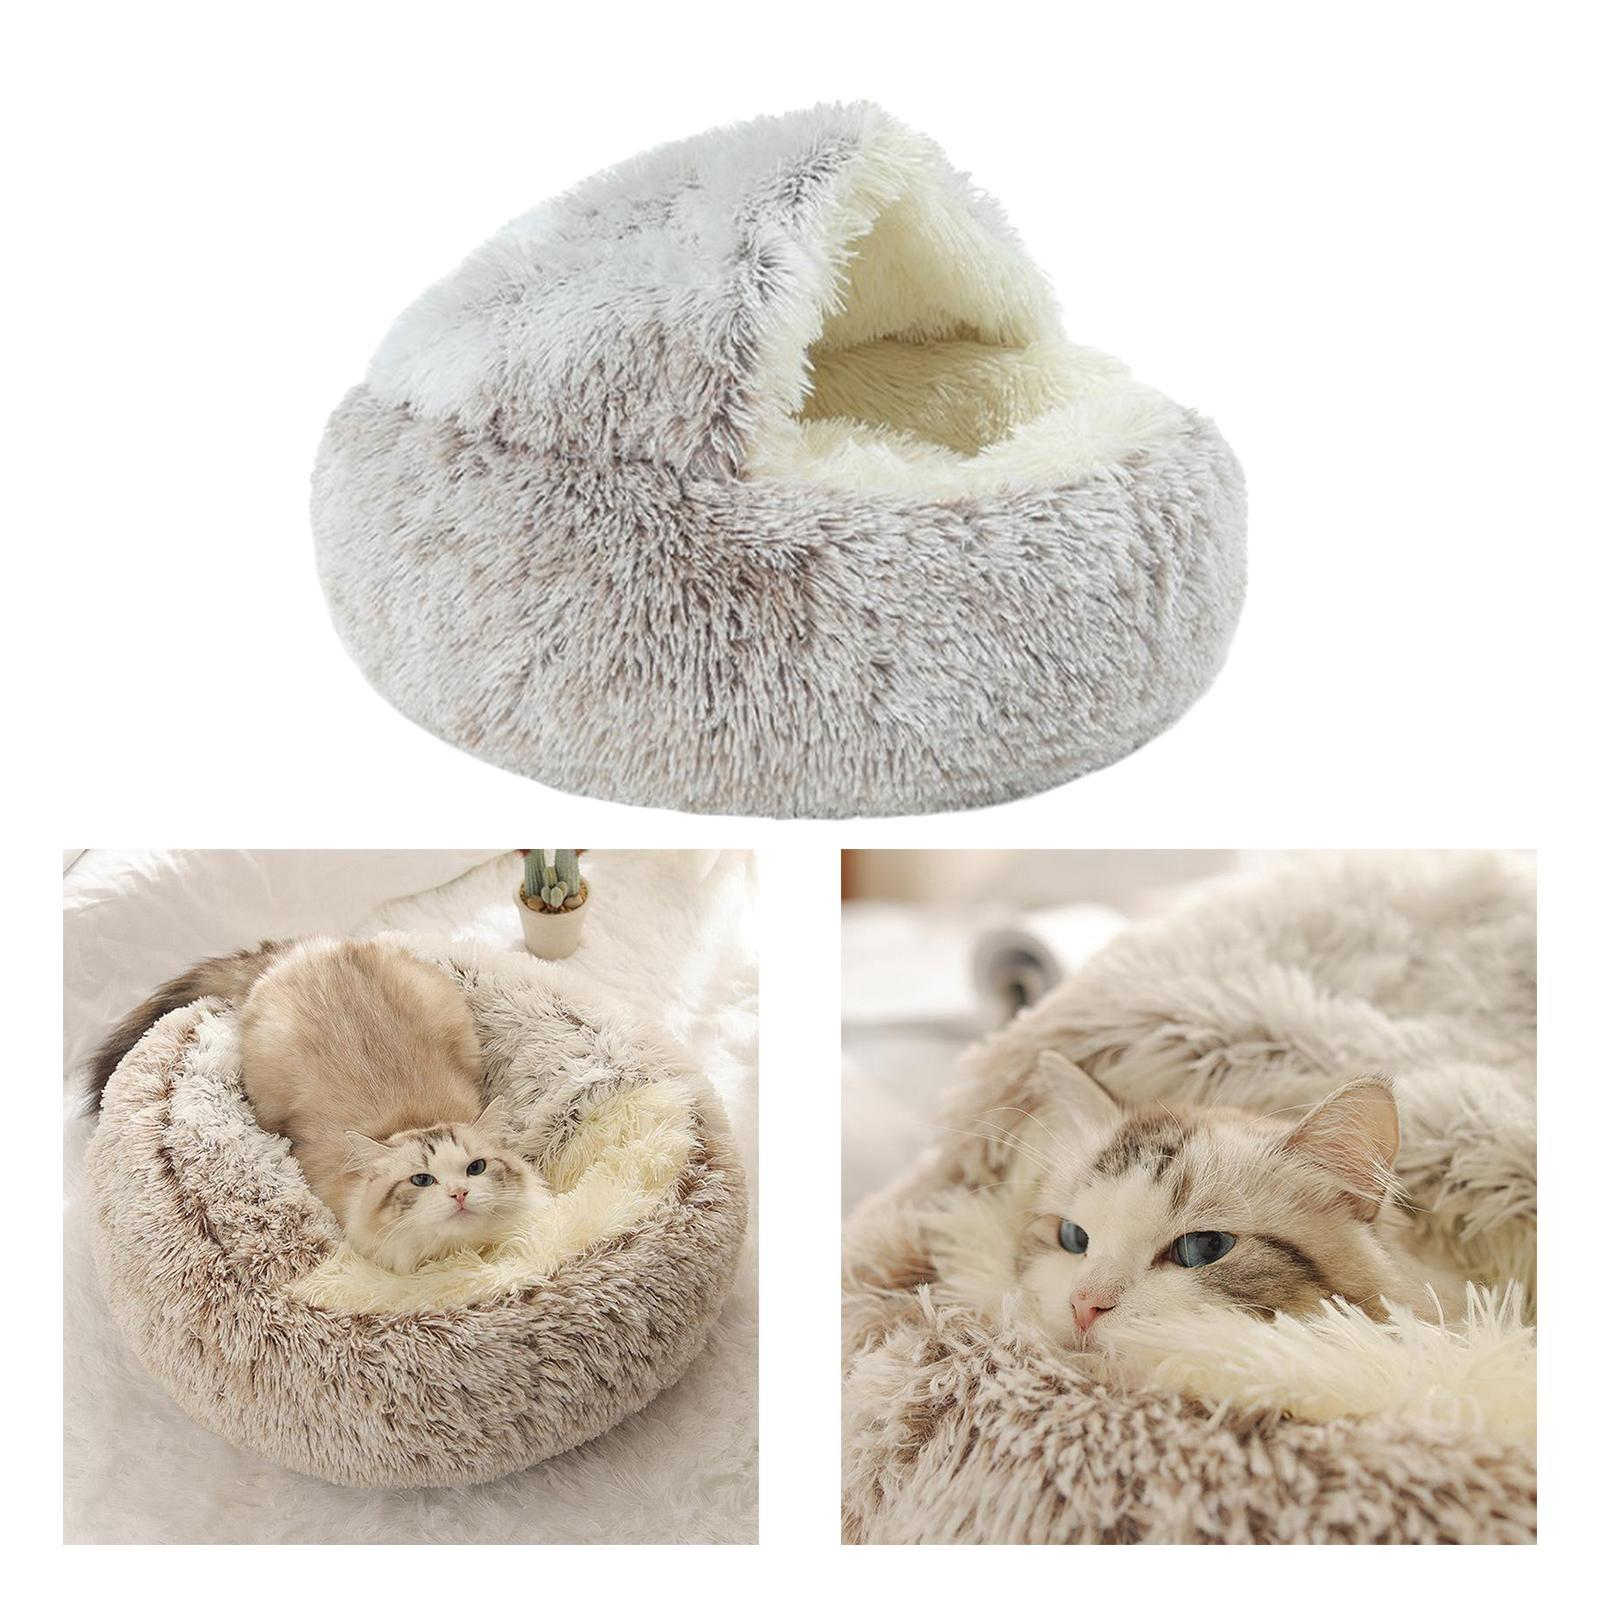 miniature 29 - Pet Chien Chat Calmant Lit Rond Nid Chaud En Peluche Confortable de Couchage